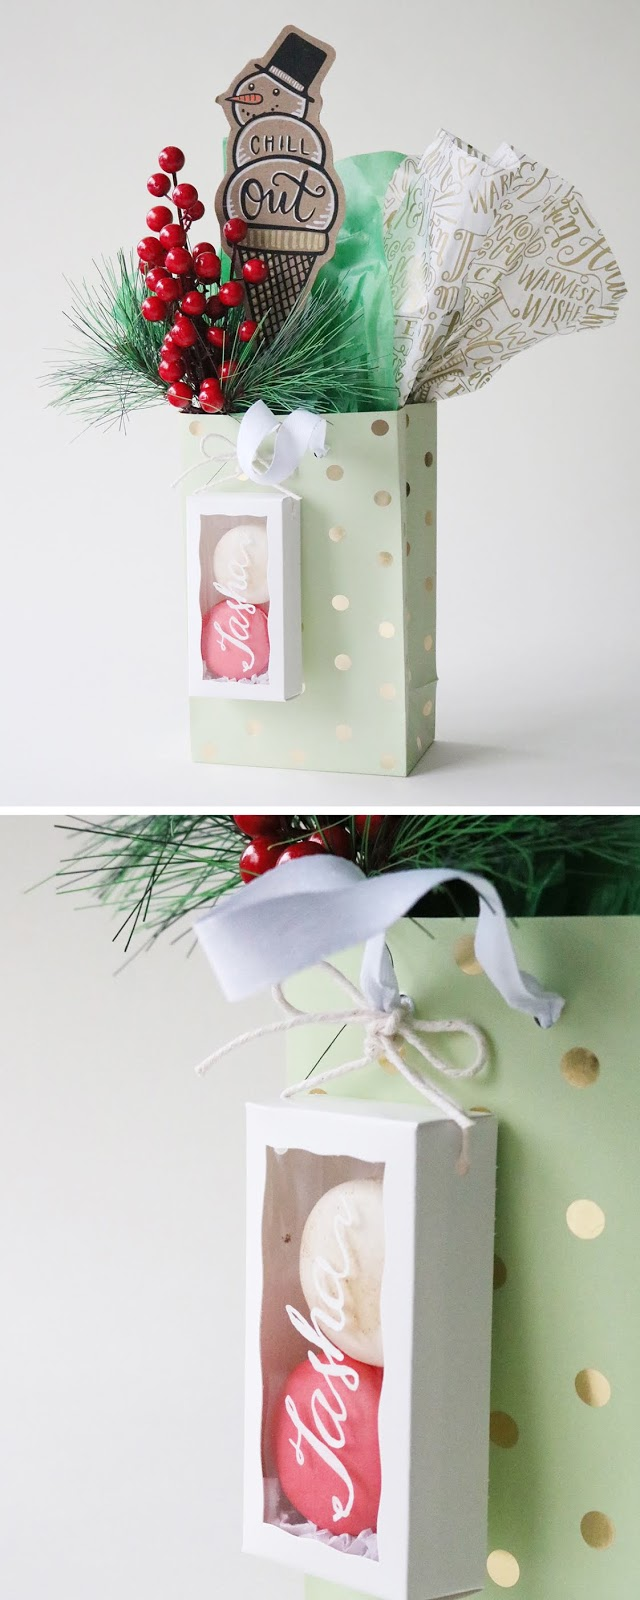 edible gift topper inspiration for holiday gift wrapping | Creative Bag and Bake Sale Toronto